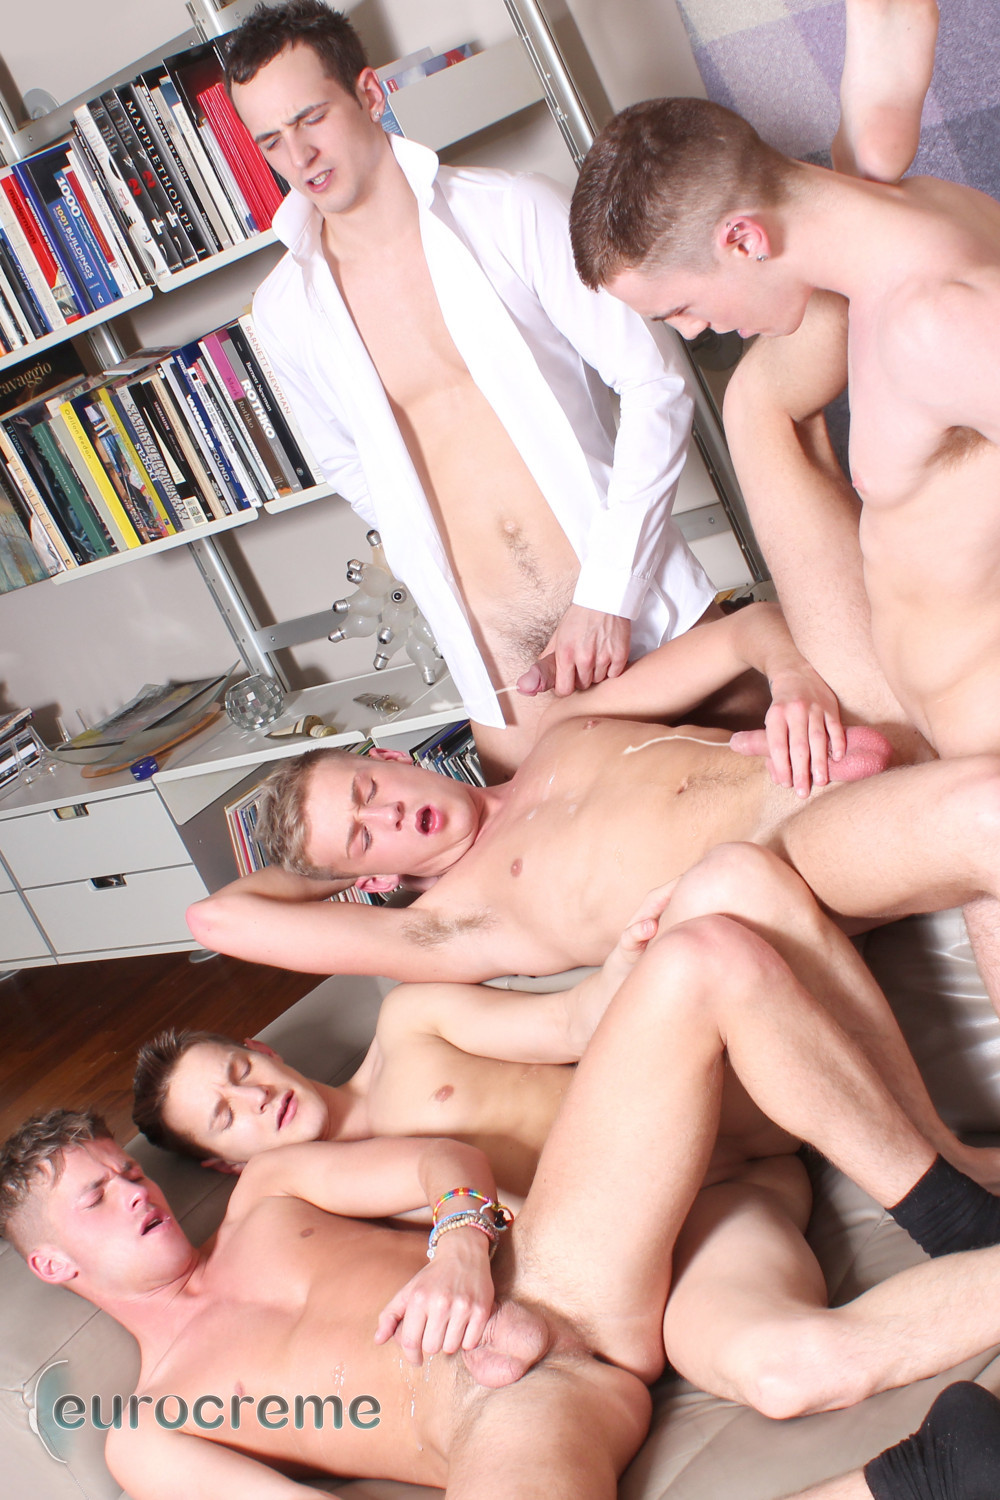 Eurocreme-Darius-JP-McKensie-Danny-and-Luke-Big-Cock-Twink-Orgy-Amateur-Gay-Porn-10 Birthday Party Turns Into a Big Cock Amateur Twink Orgy